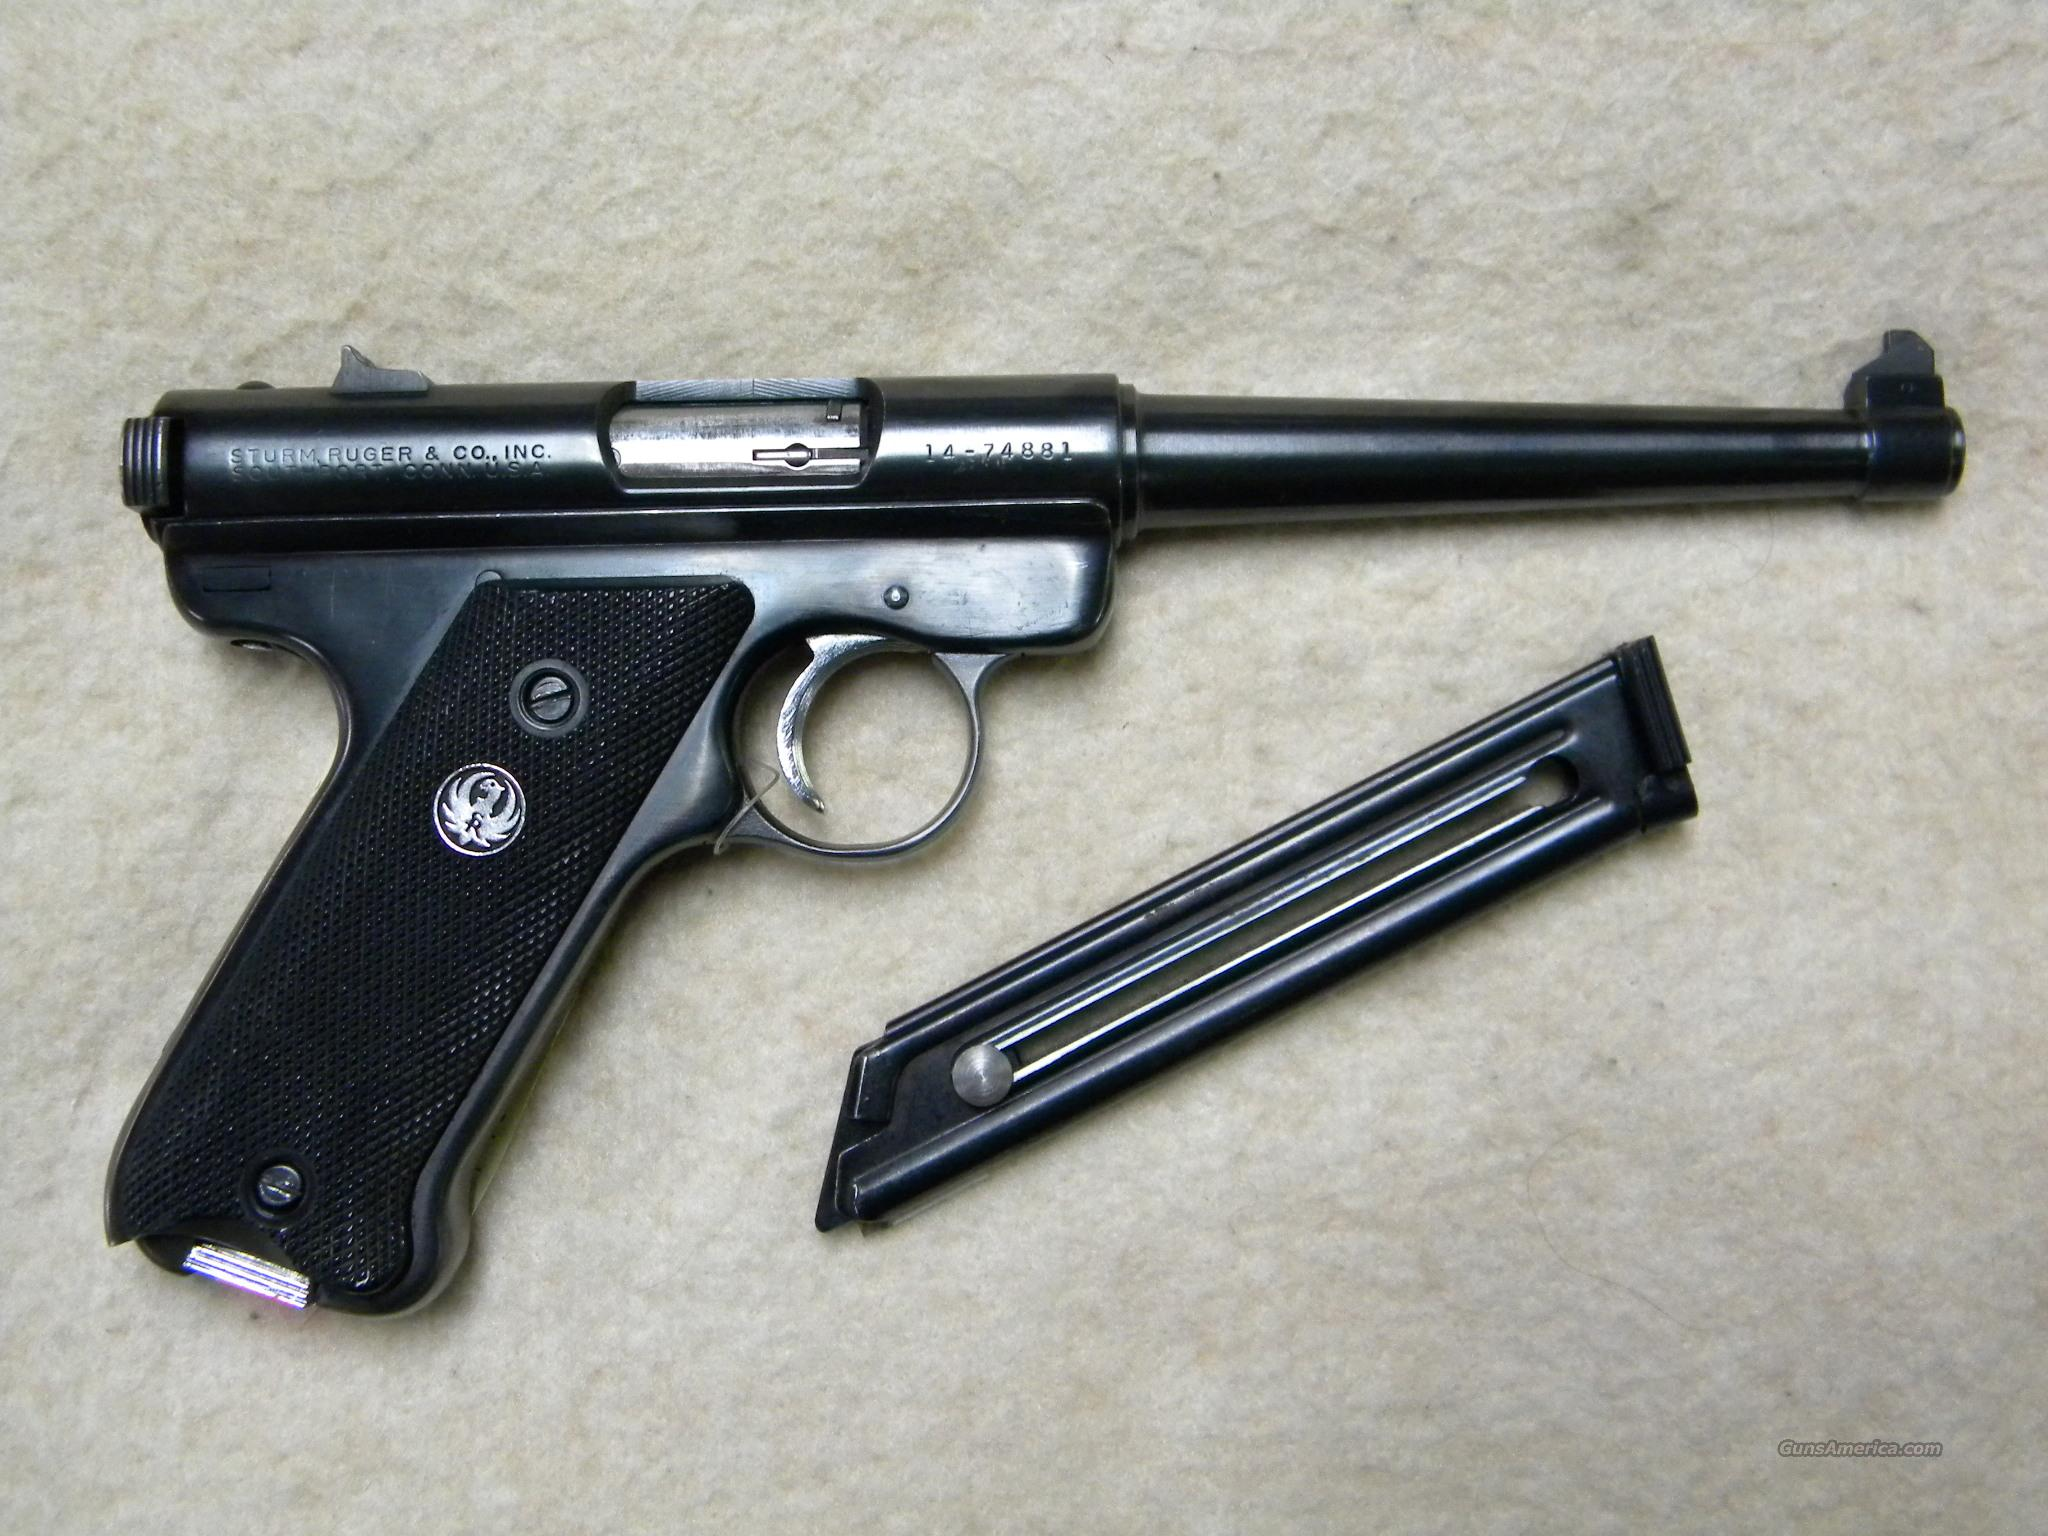 "Ruger 'Standard', .22 LR, 6"" Tapered Barrel  Guns > Pistols > Ruger Semi-Auto Pistols > Mark I/II/III Family"